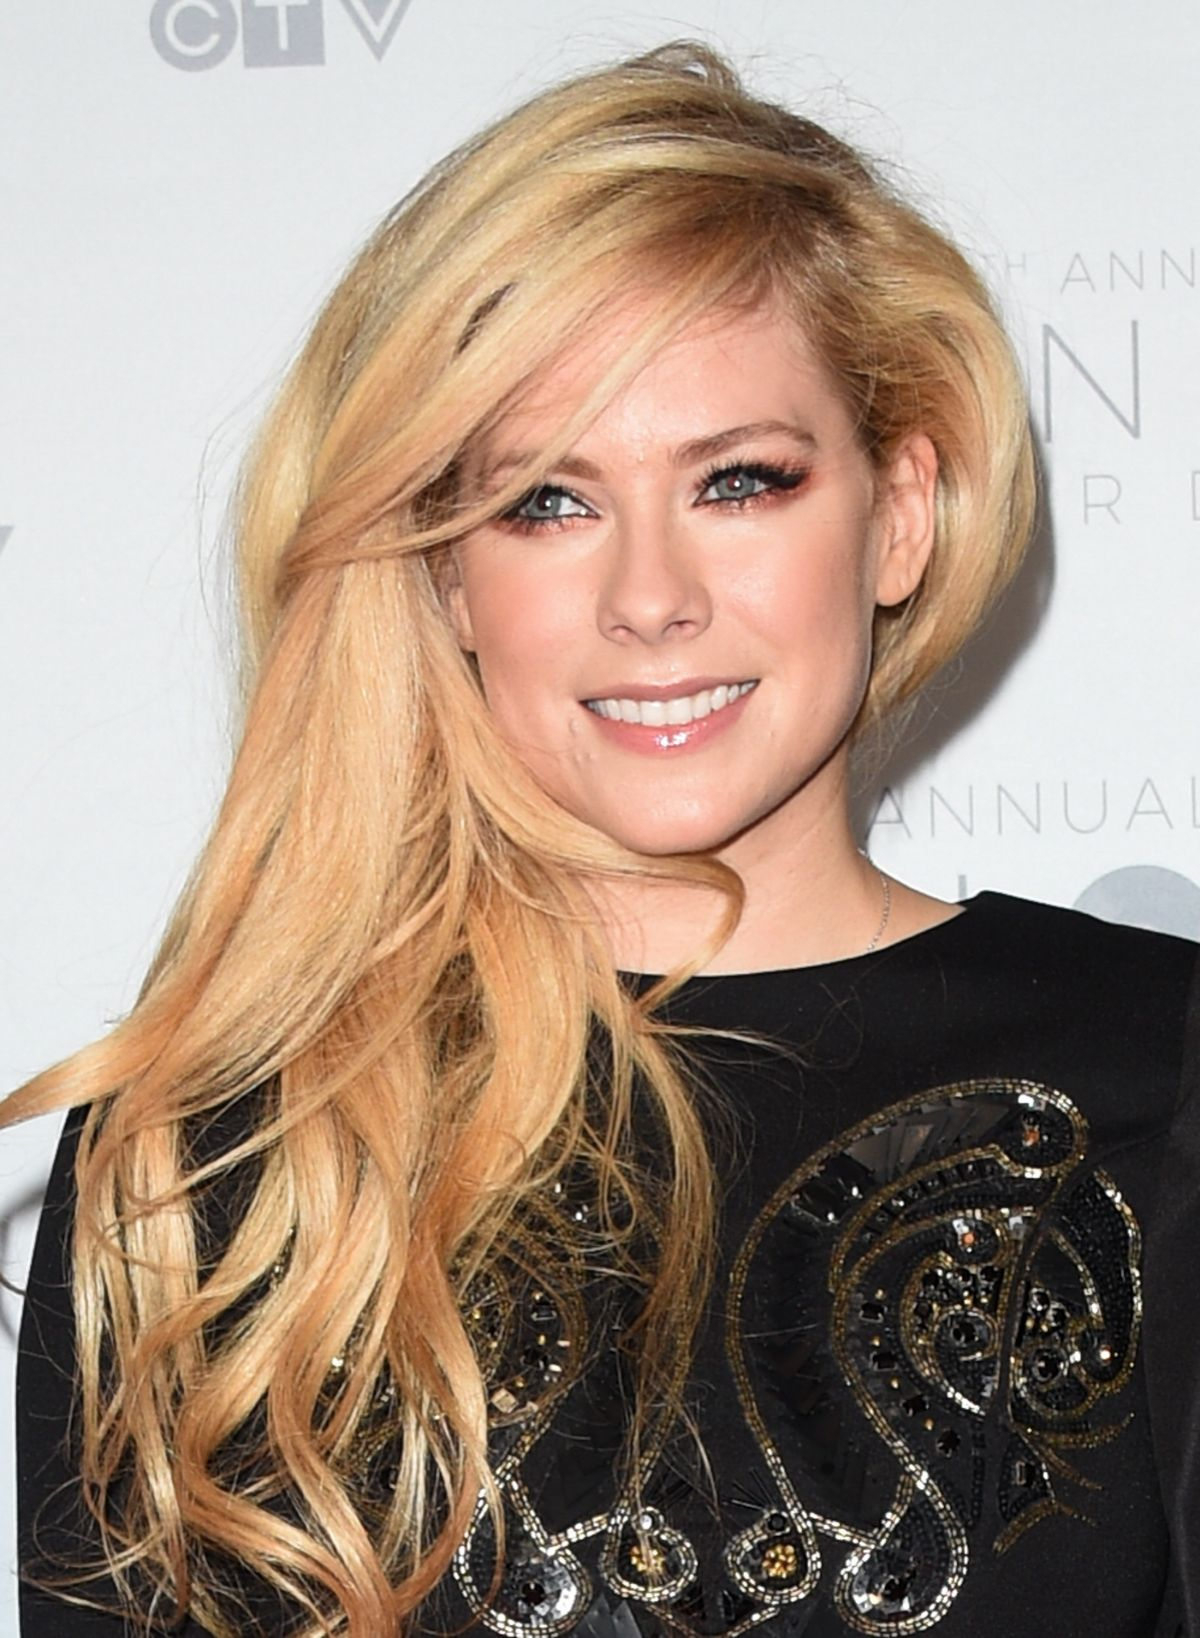 AVRIL LAVIGNE at Juno ... Avril Lavigne